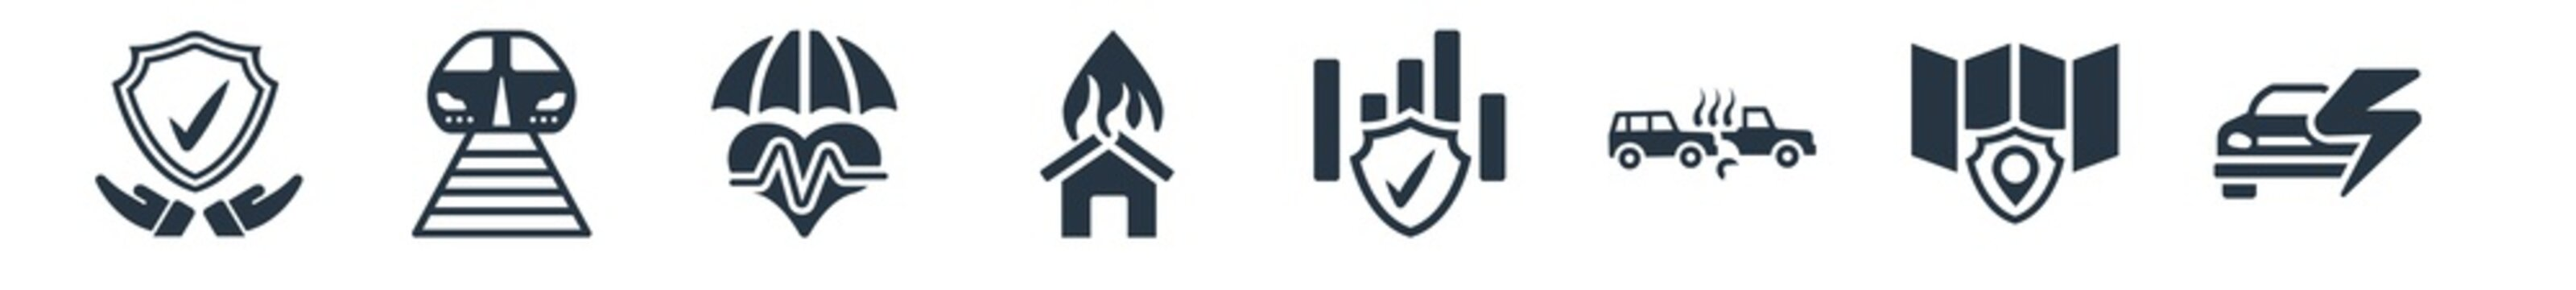 insurance filled icons. glyph vector icons such as problem electric, coverage area, rear end collision, actual cash value, disaster, life insurance, transport sign isolated on white background.